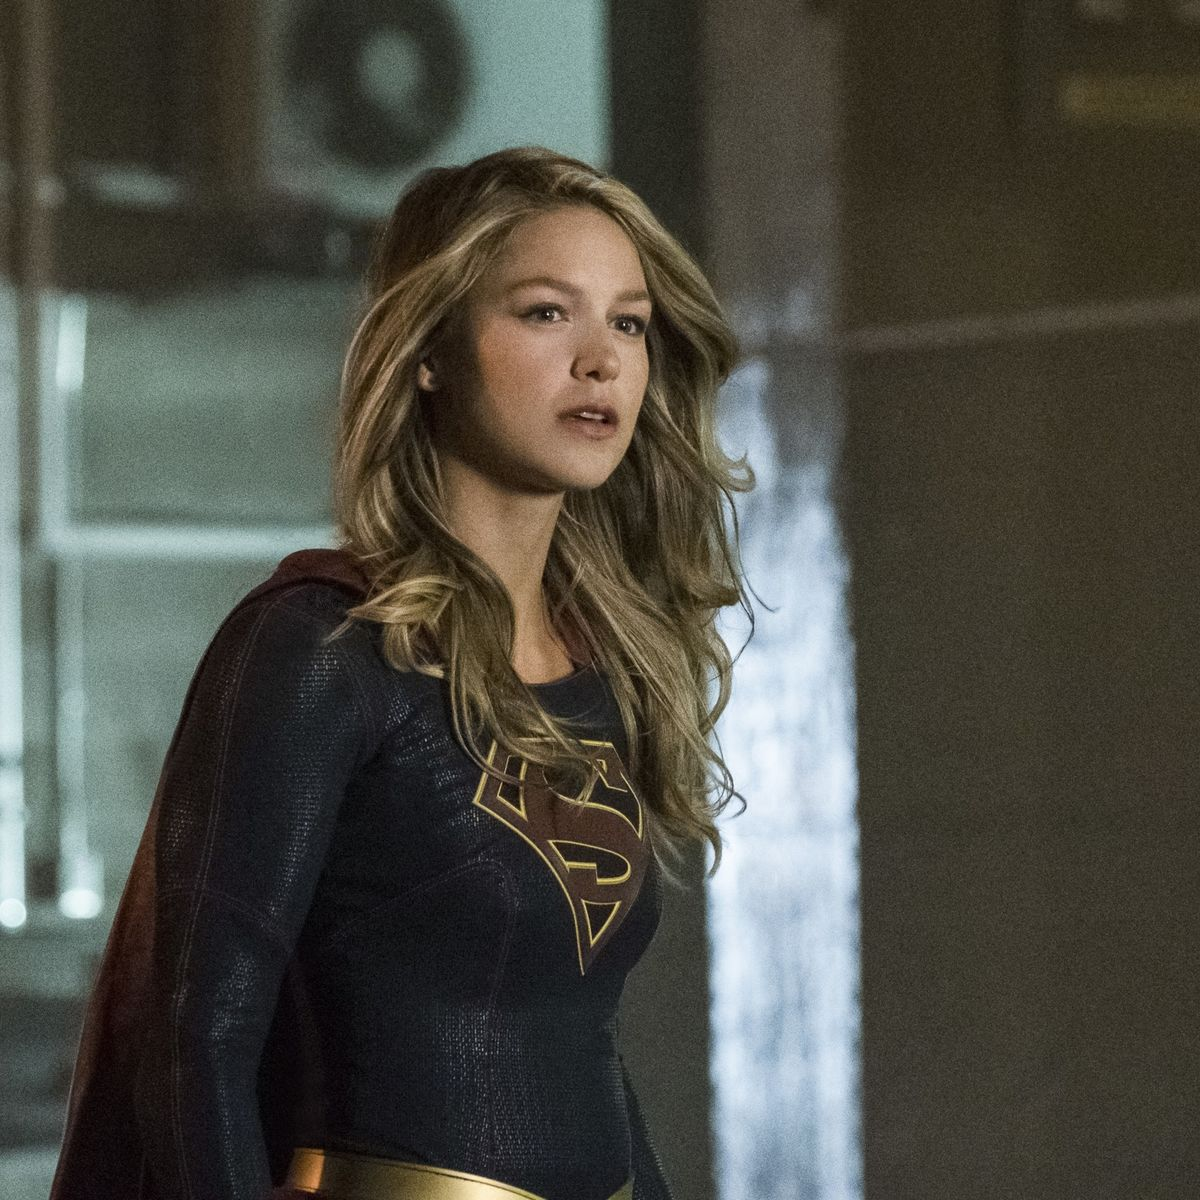 Supergirl Season 4 to Introduce TV's First Transgender Superhero